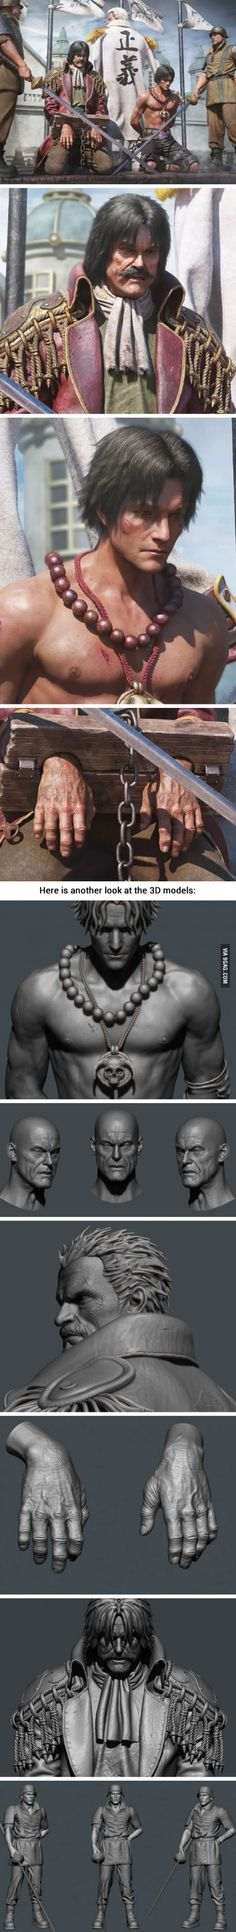 Realistic 3D One Piece Artwork By Chinese Artist Zhong Zhengxiang